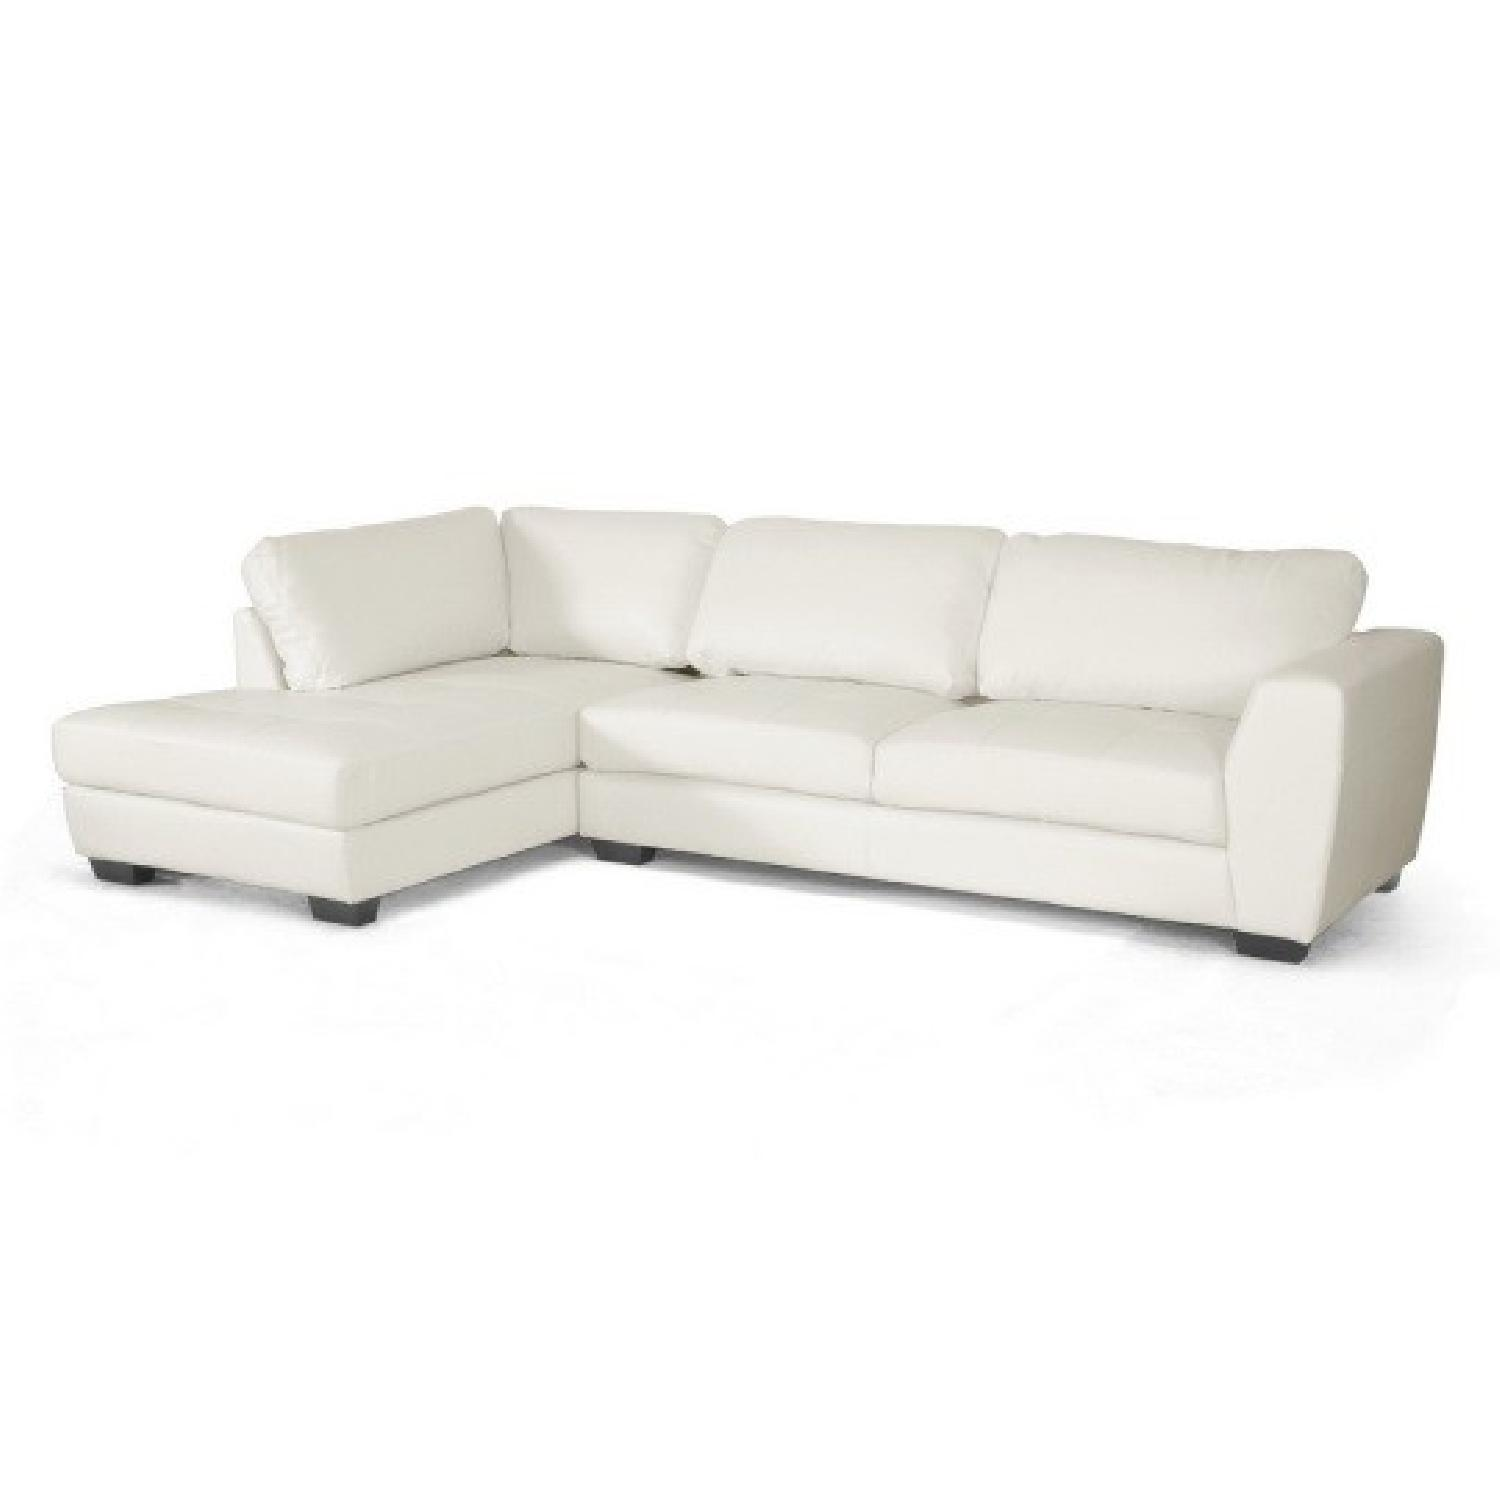 Baxton Studio White Leather Chaise Sectional Sofa ...